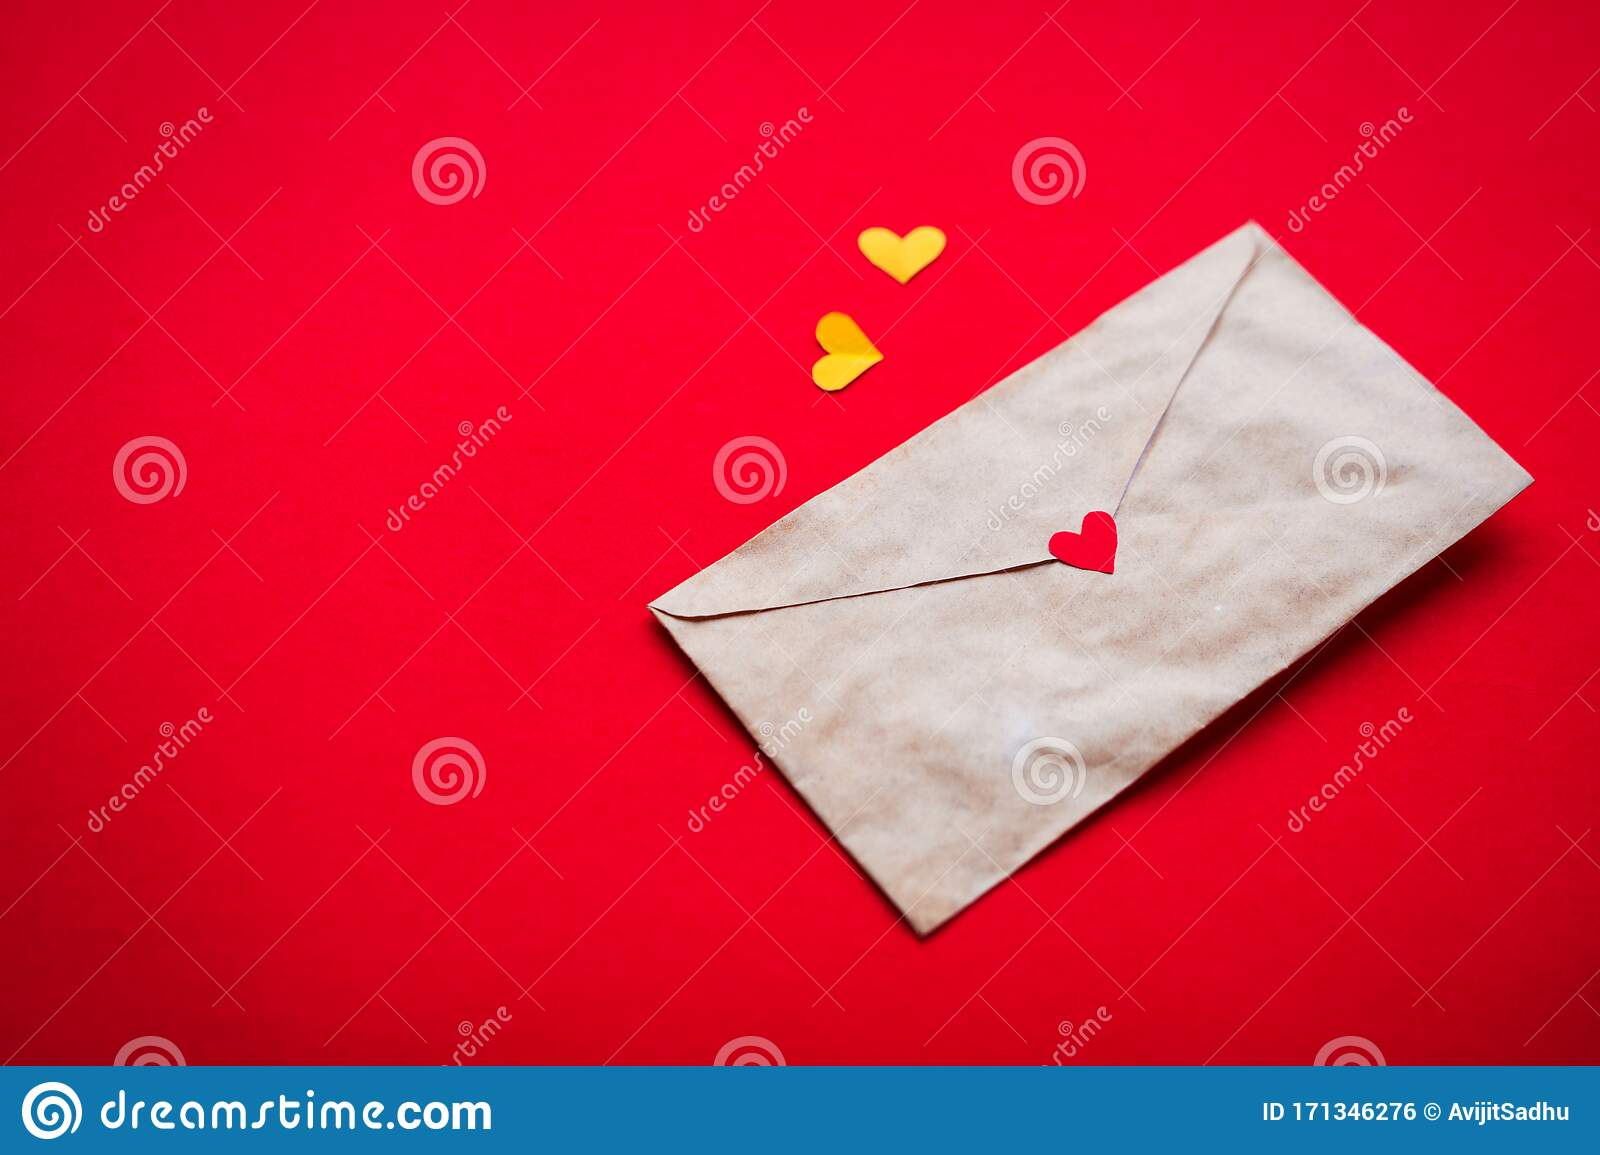 Romantic Little Hearts With Love Letter For Valentine S Day Wallpaper Stock Photo Image Of Concept Craft 171346276